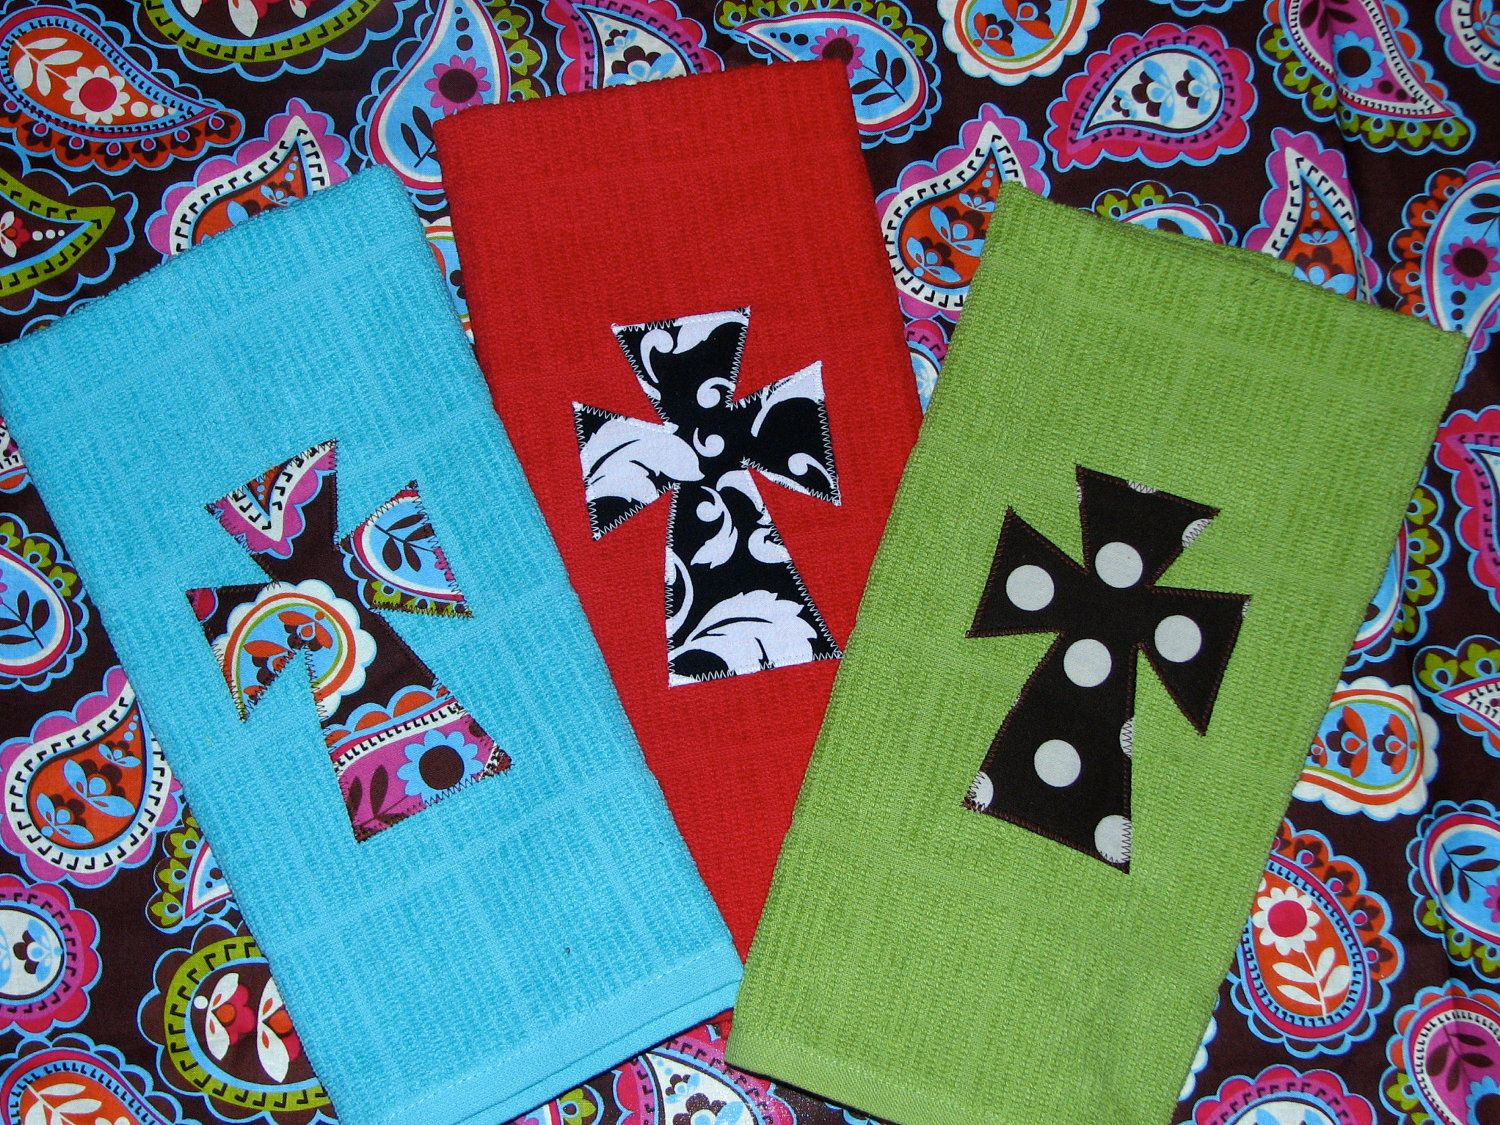 Kitchen towel with cross applique via etsy crafts